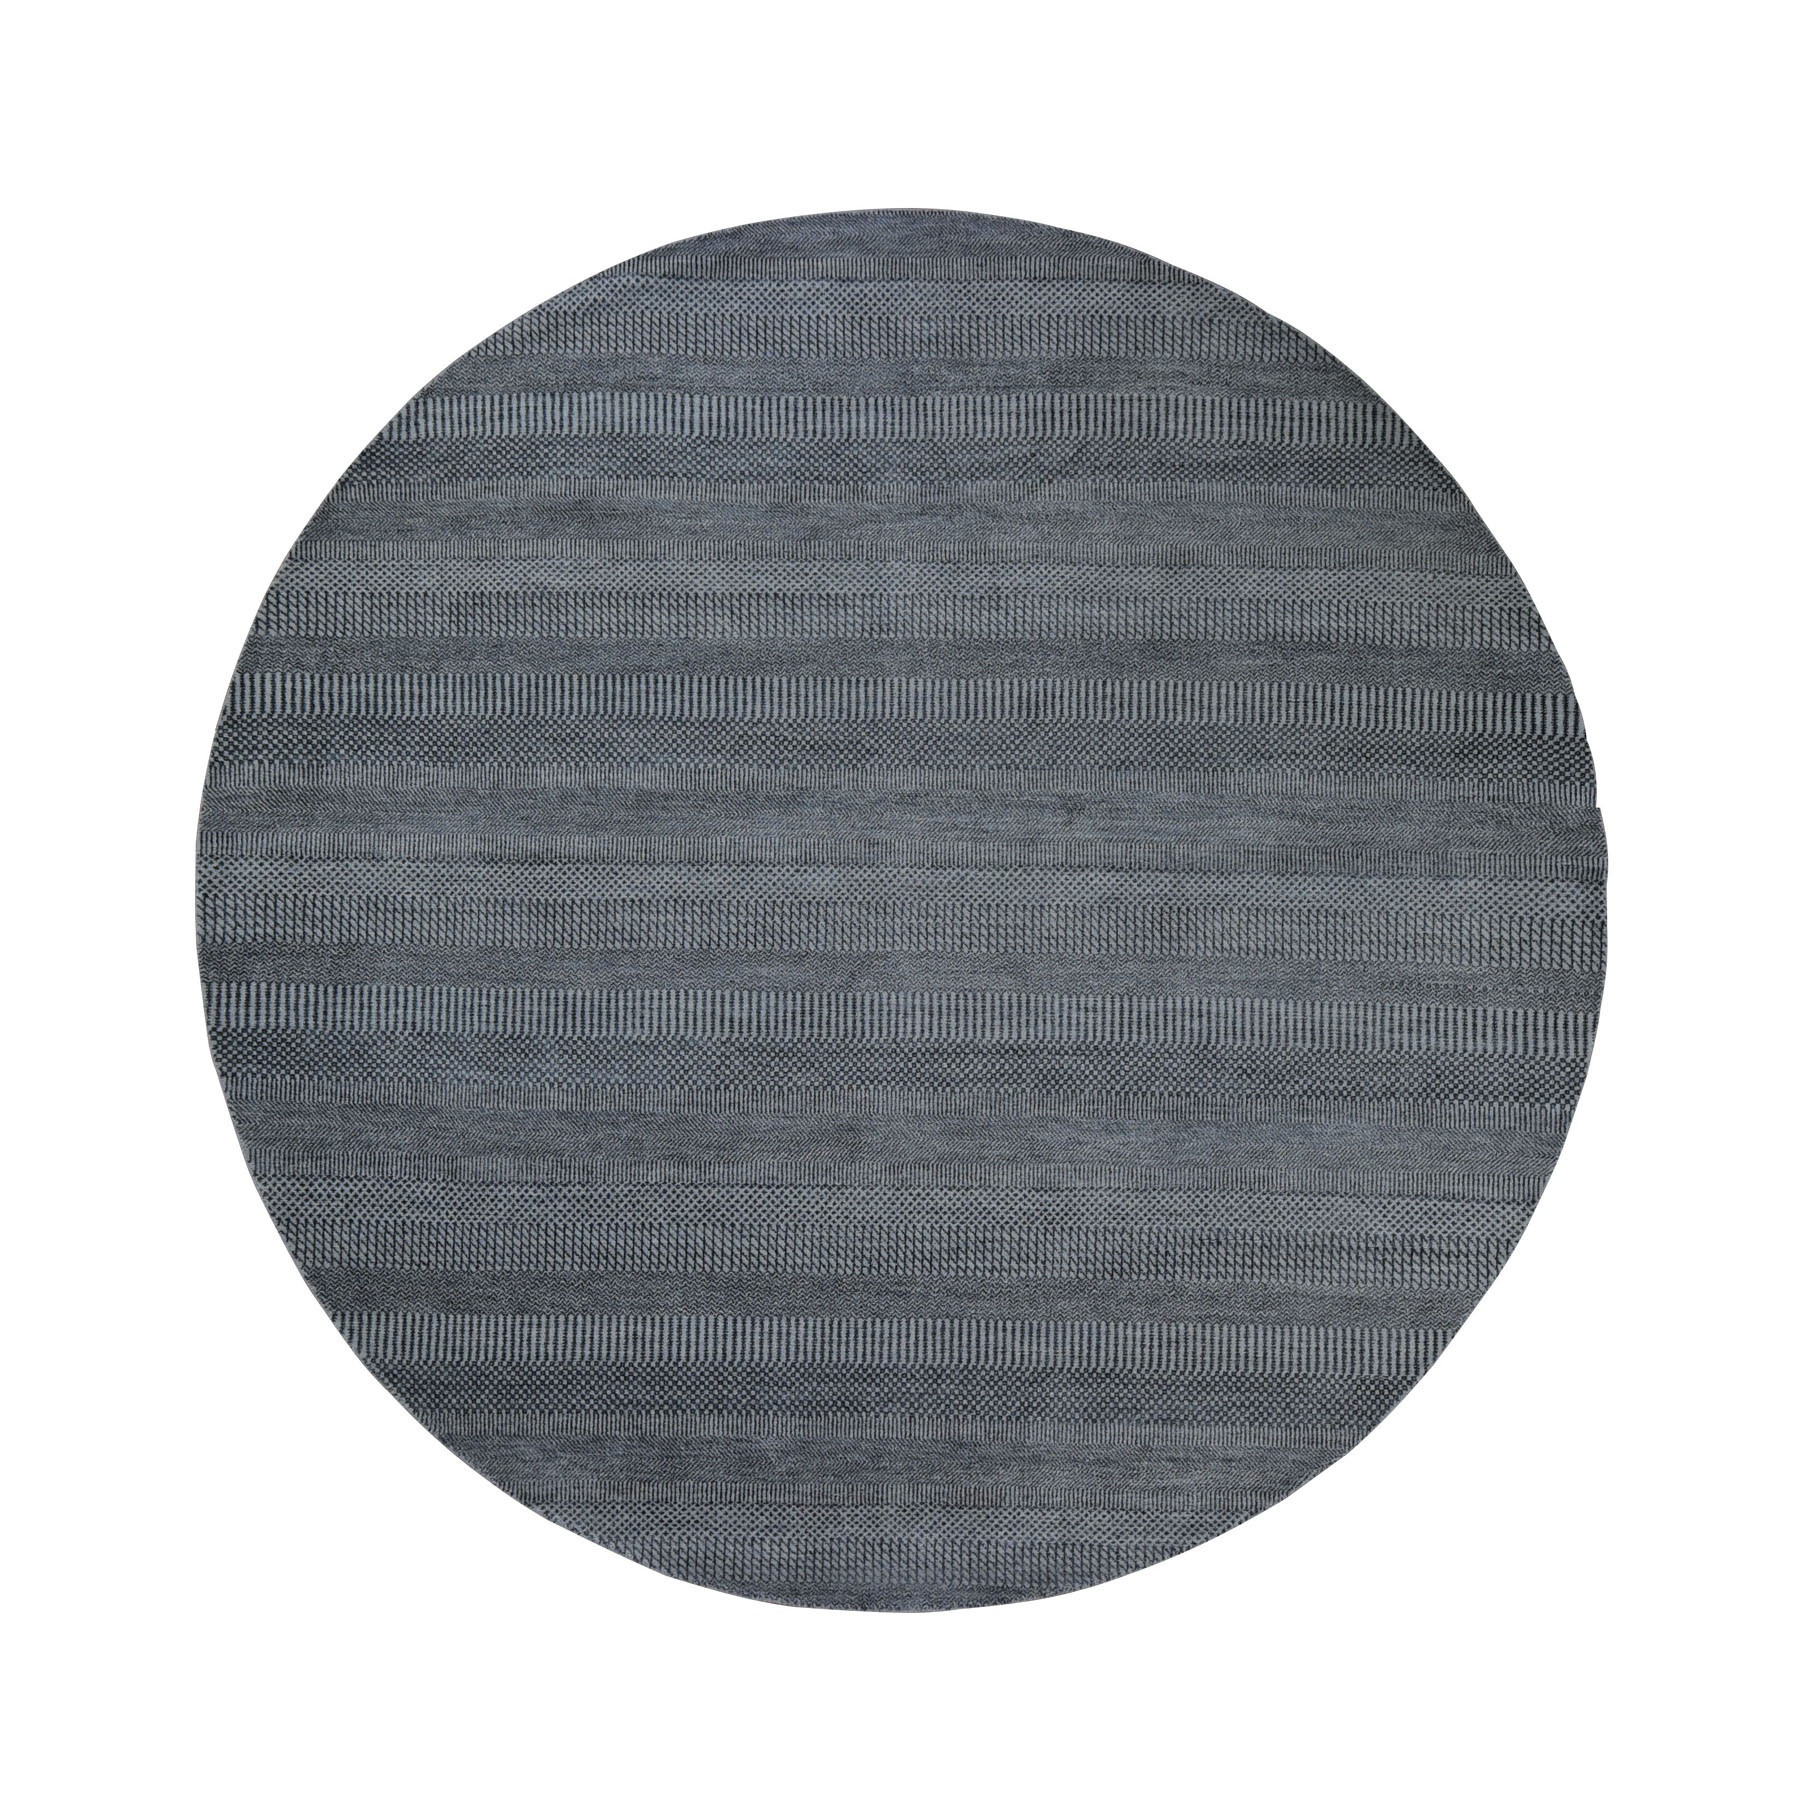 8'x8' Round Gray Grass Design Wool And Silk Hand Woven Oriental Rug